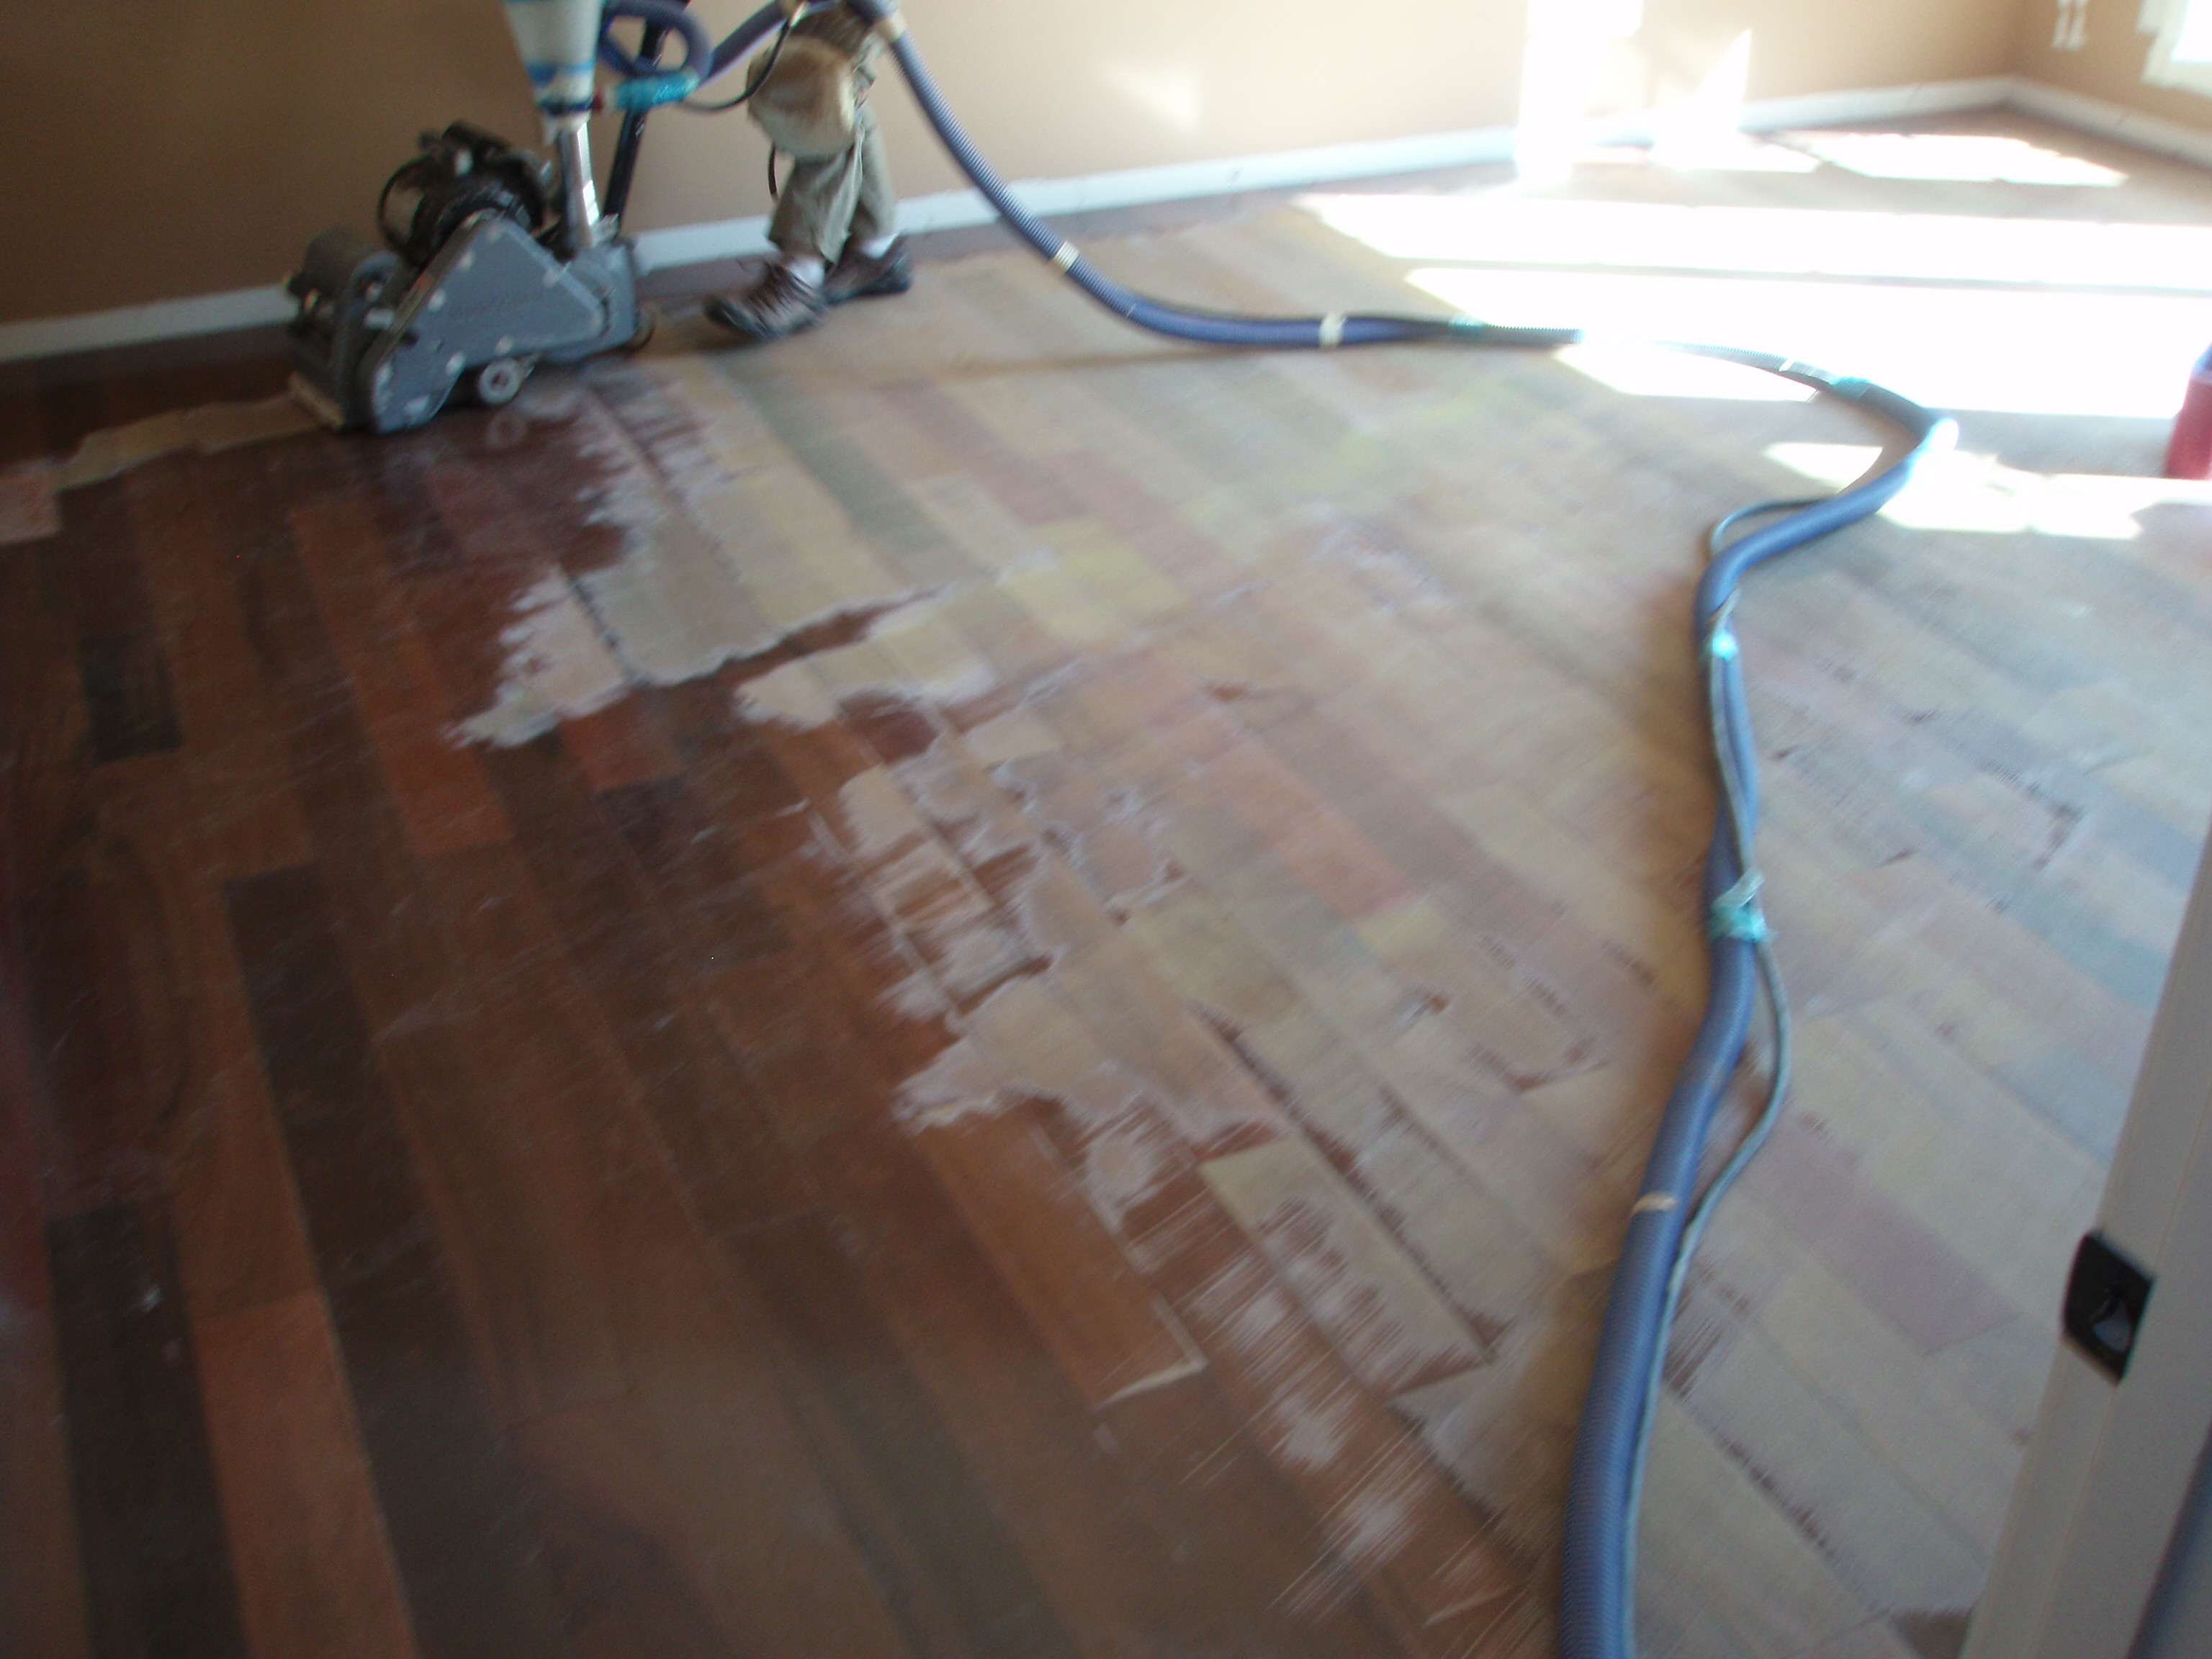 fix refinishing hardwood floors without sanding of can you refinish bamboo floors floor pertaining to can you refinish bamboo floors will refinishingod floors pet stains old without sanding wood with